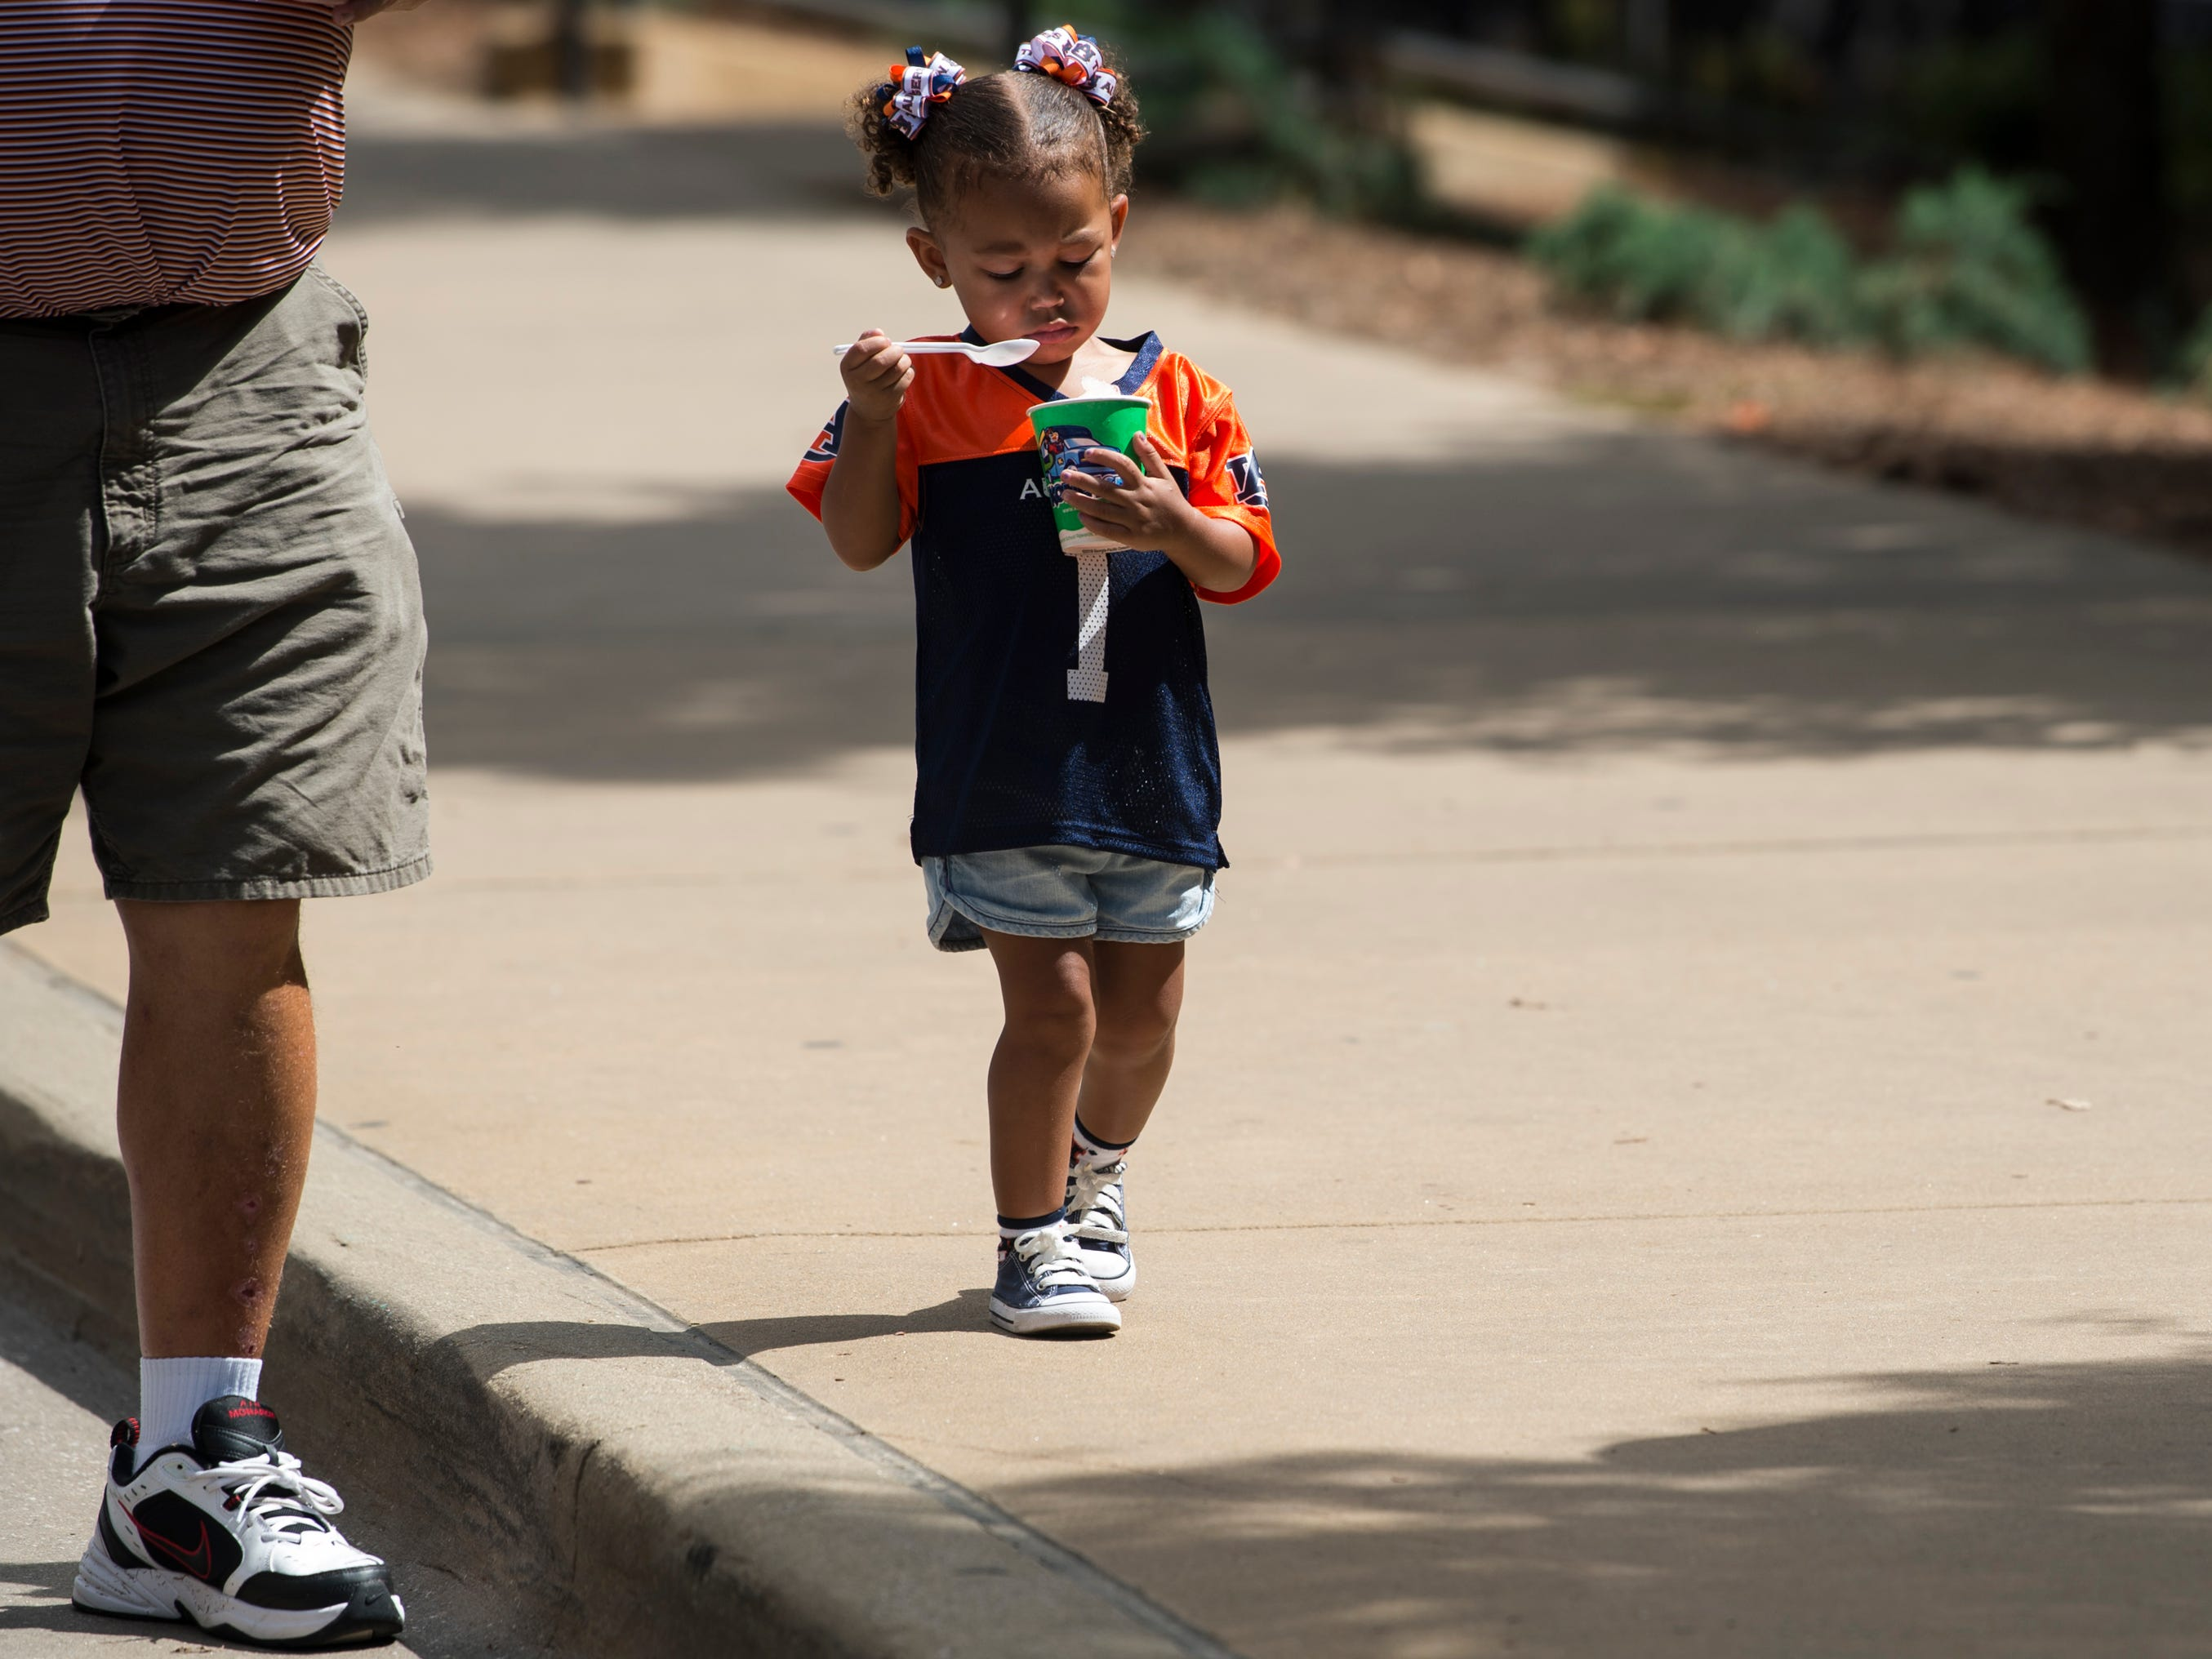 Ay'annah Favors, 2, enjoys a snowcone outside Jordan-Hare Stadium in Auburn, Ala., on Saturday, Sept. 29, 2018.